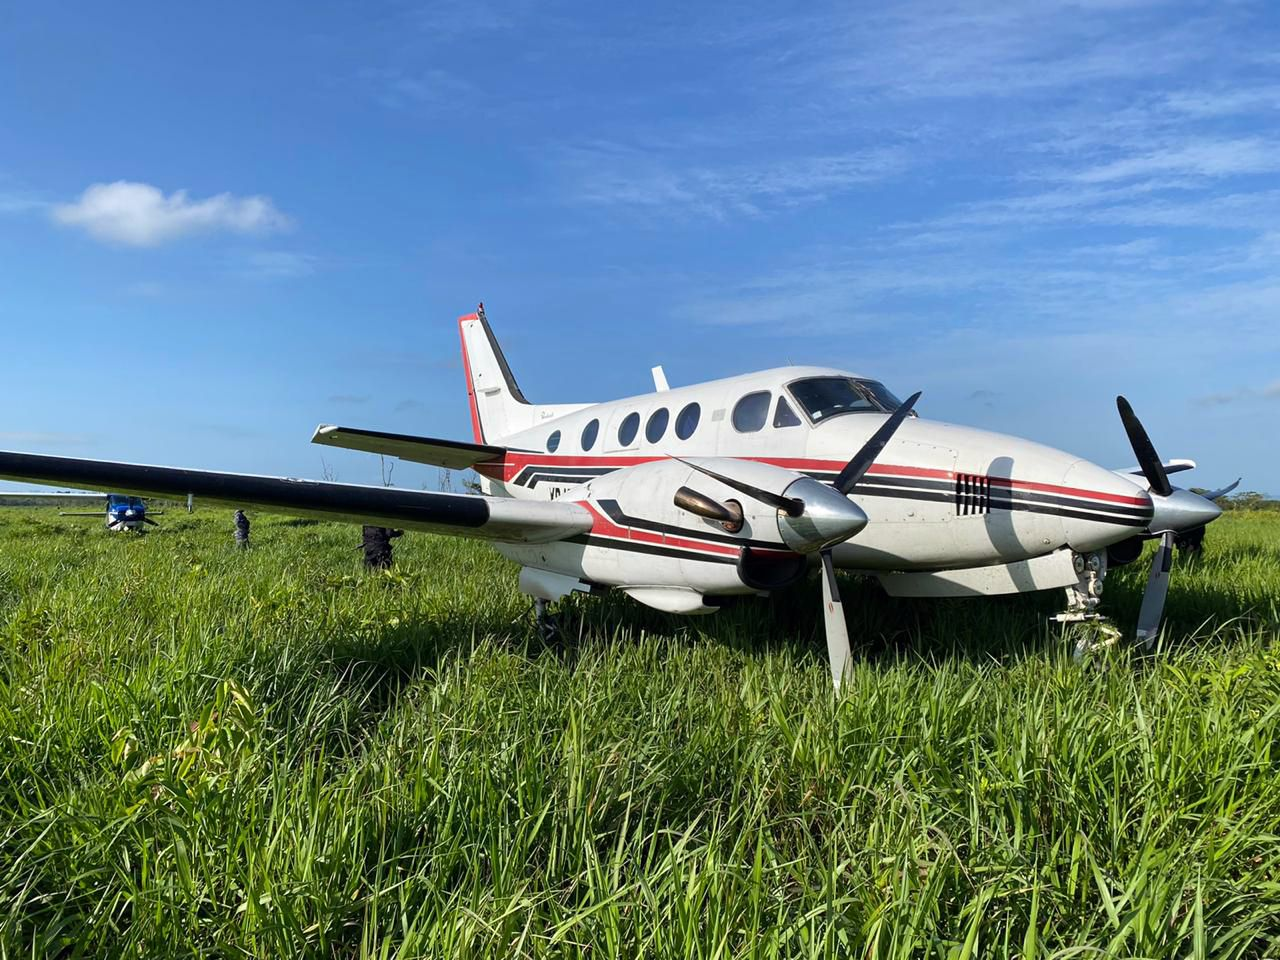 Suspicious aircraft found in marshes of Petén, Guatemala